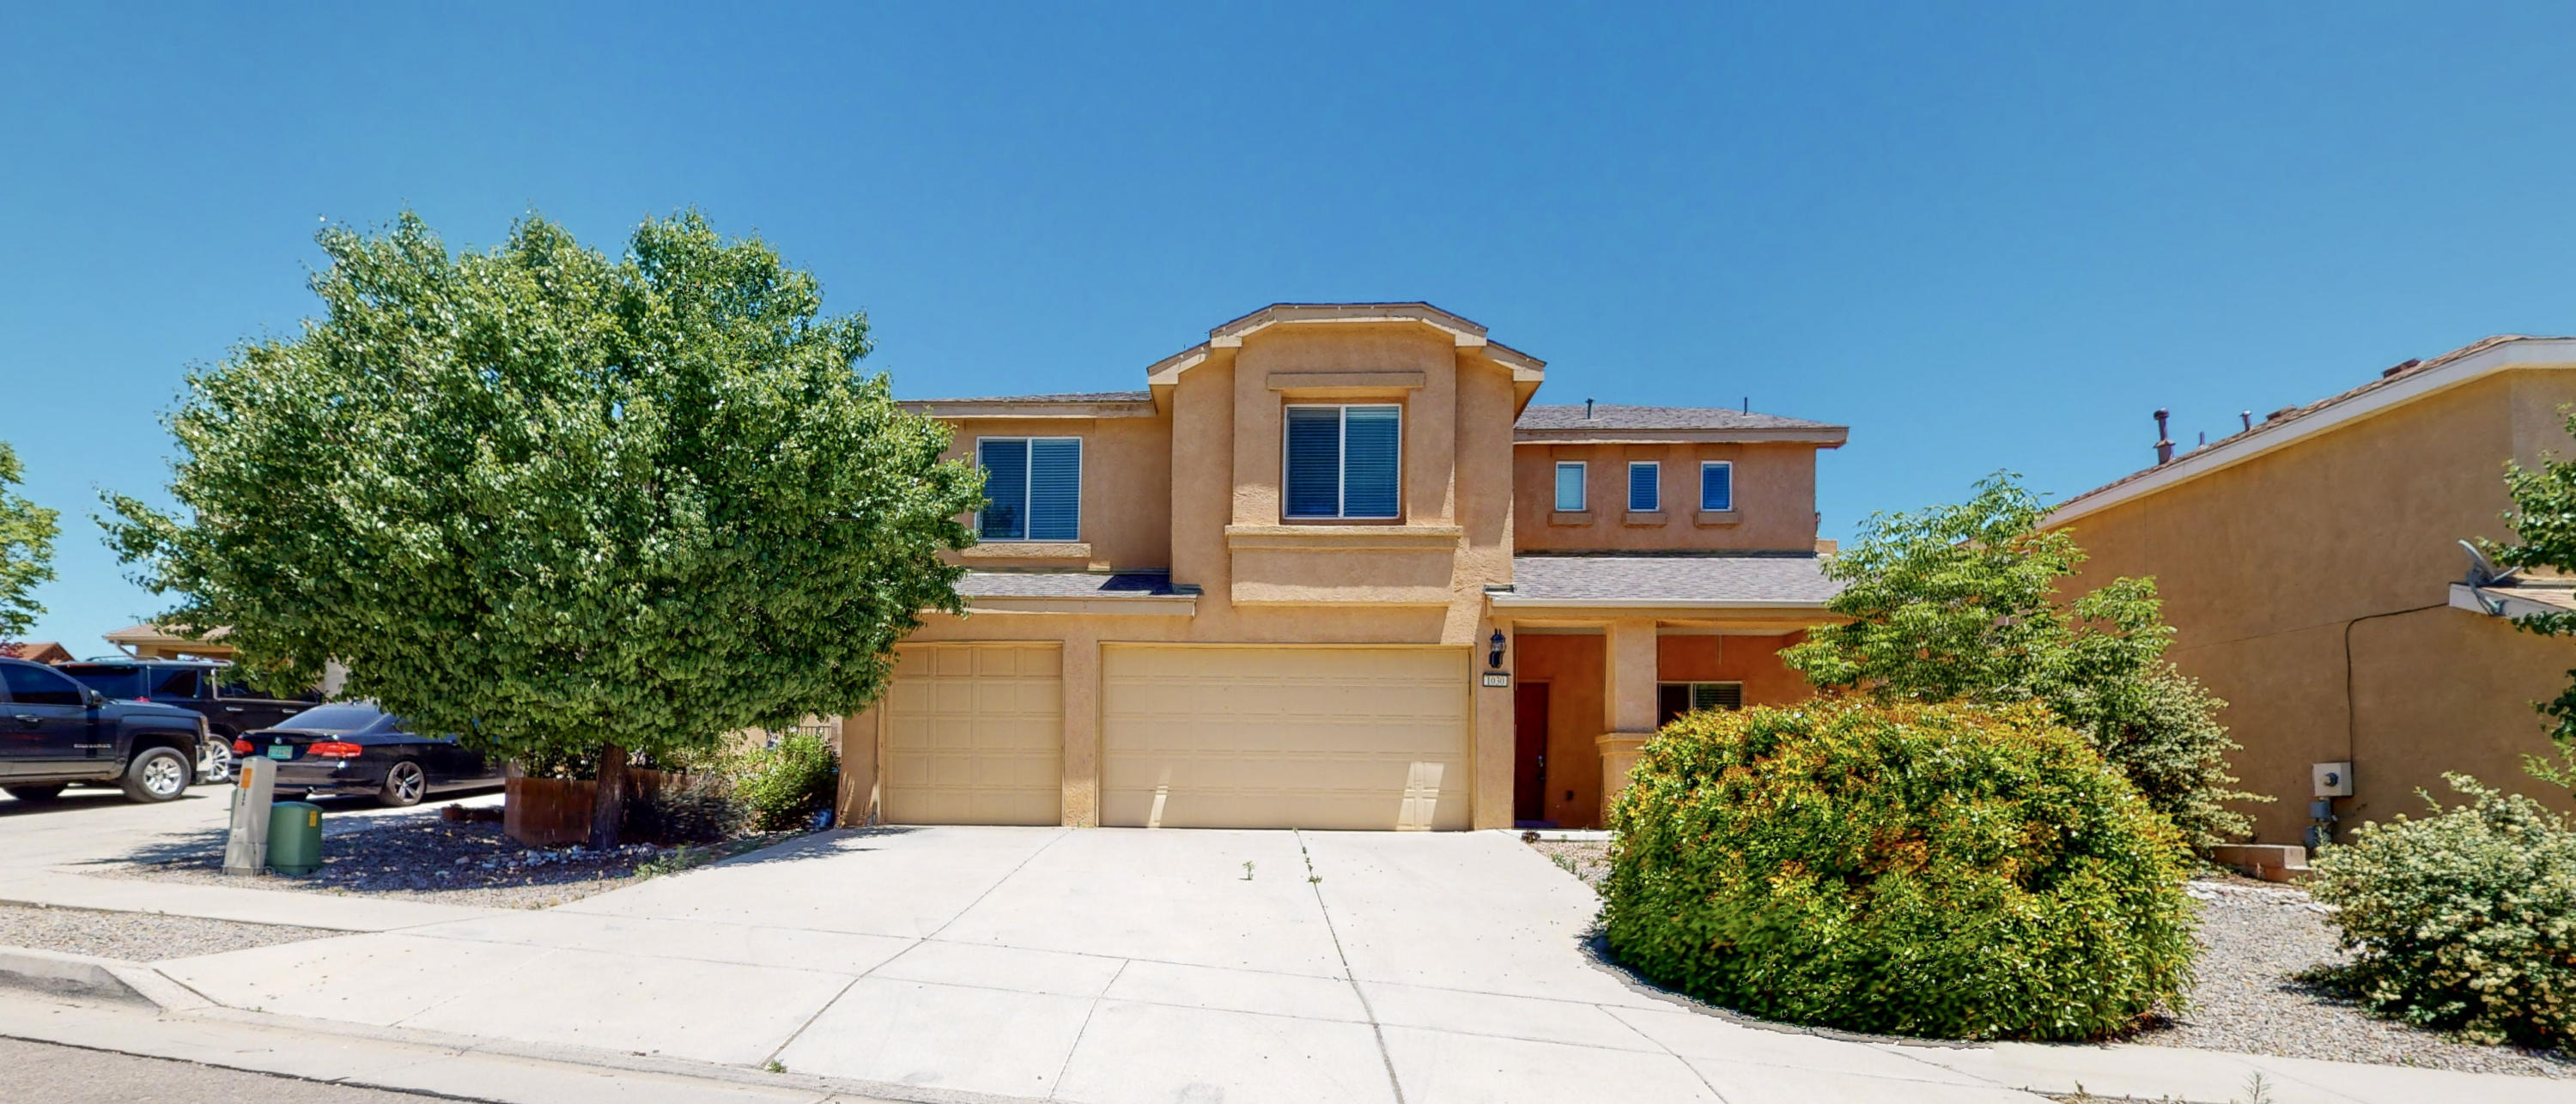 Welcome Home!Los Lunas home boasting over 3,000 square feet, 4 bedrooms, 2.5 bathrooms, loft, huge living space with a sizable yard backyard.